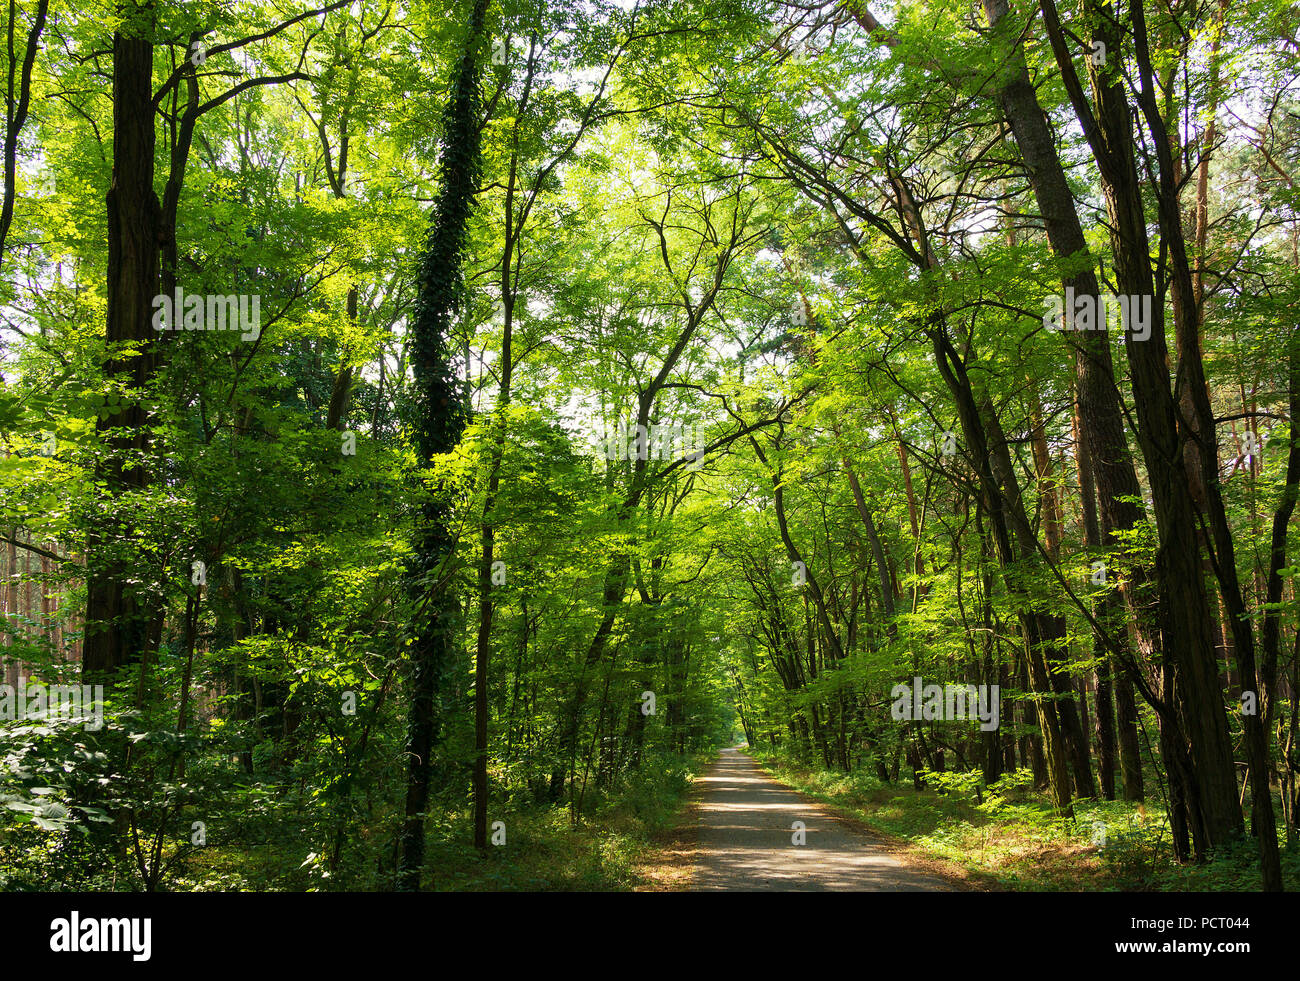 European cycle route R1, Brandenburg State, forest path - Stock Image